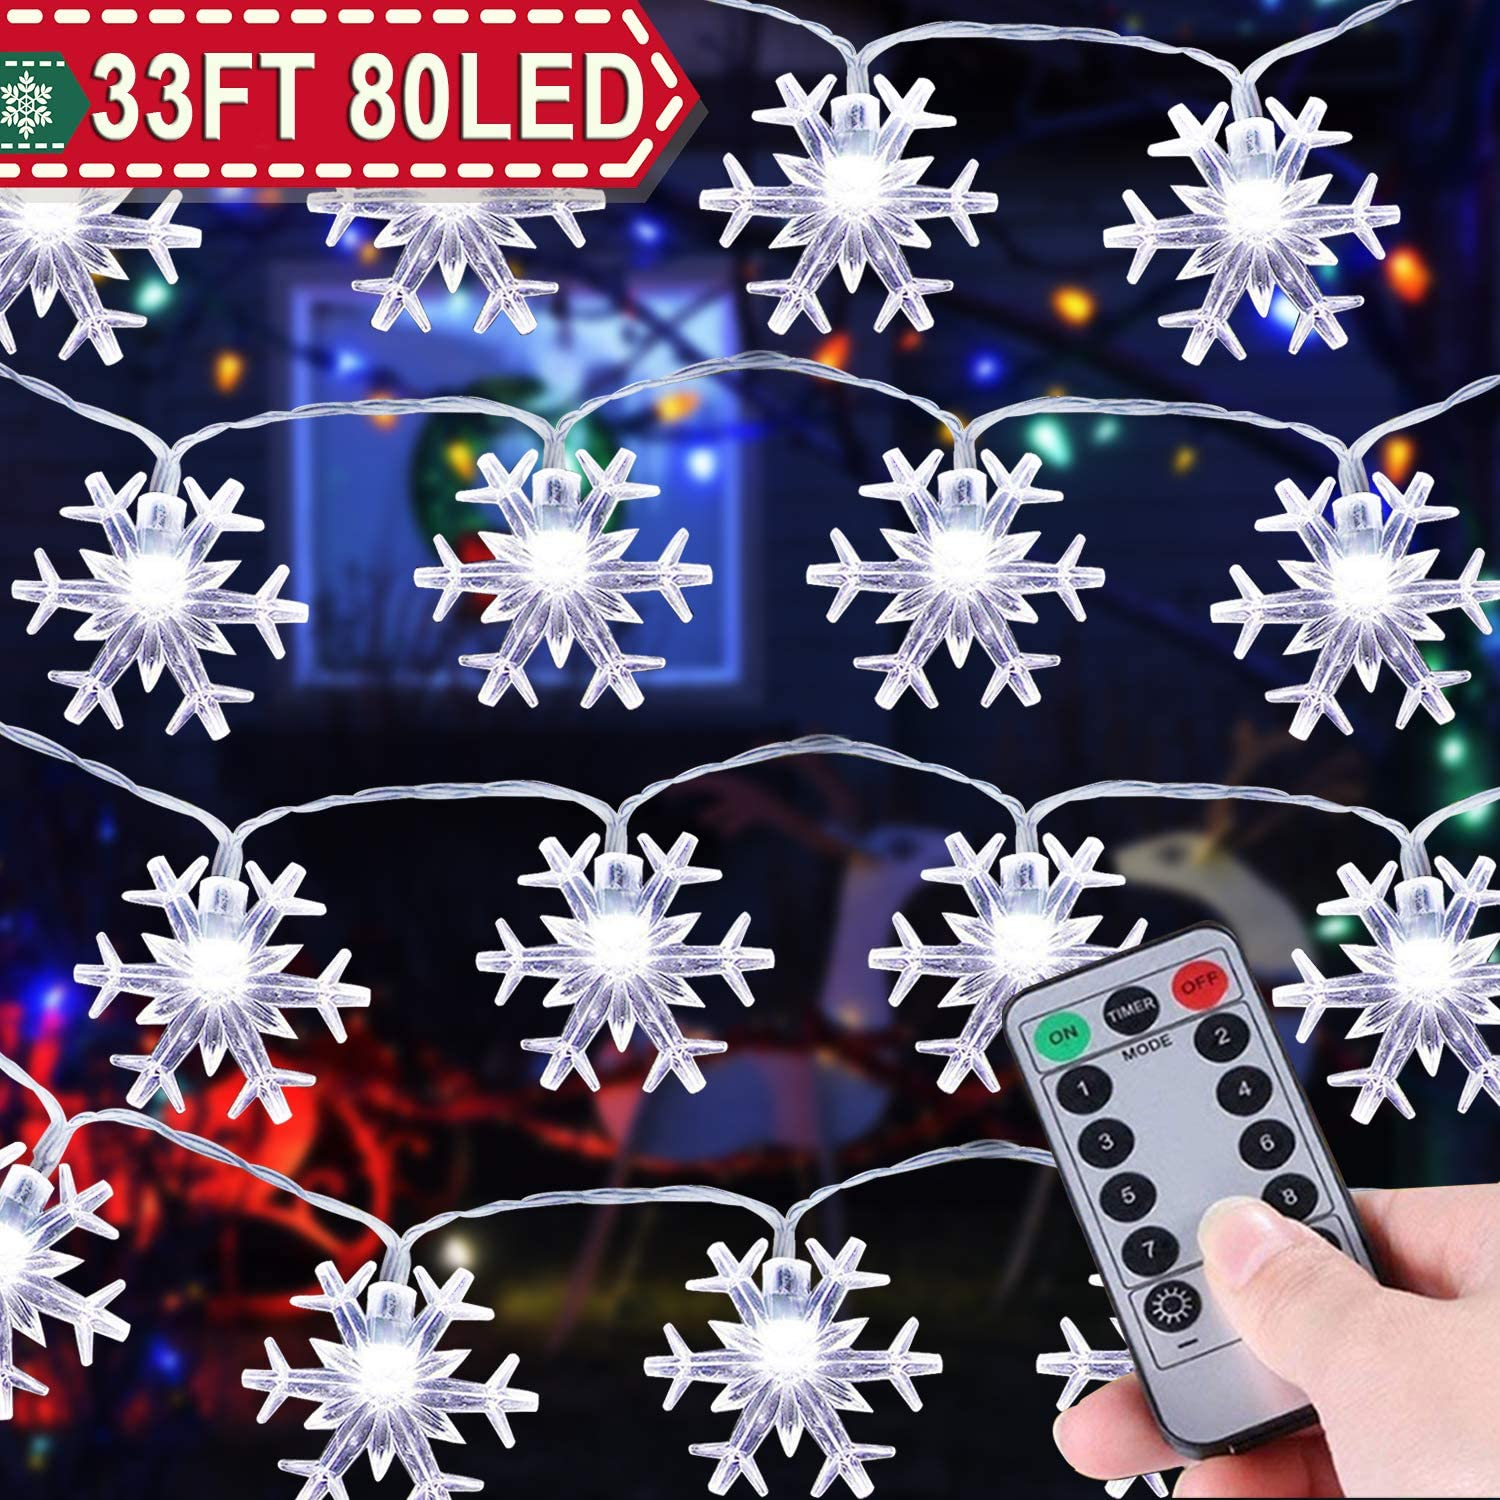 33 ft 80 LEDs Snowflake String Lights Battery Operated Outdoor Indoor Christmas Fairy Lights for Holiday Party Decor Patio Garden Bedroom with Remote Control Timer 8 Flash Mode LED Snowflake Lights